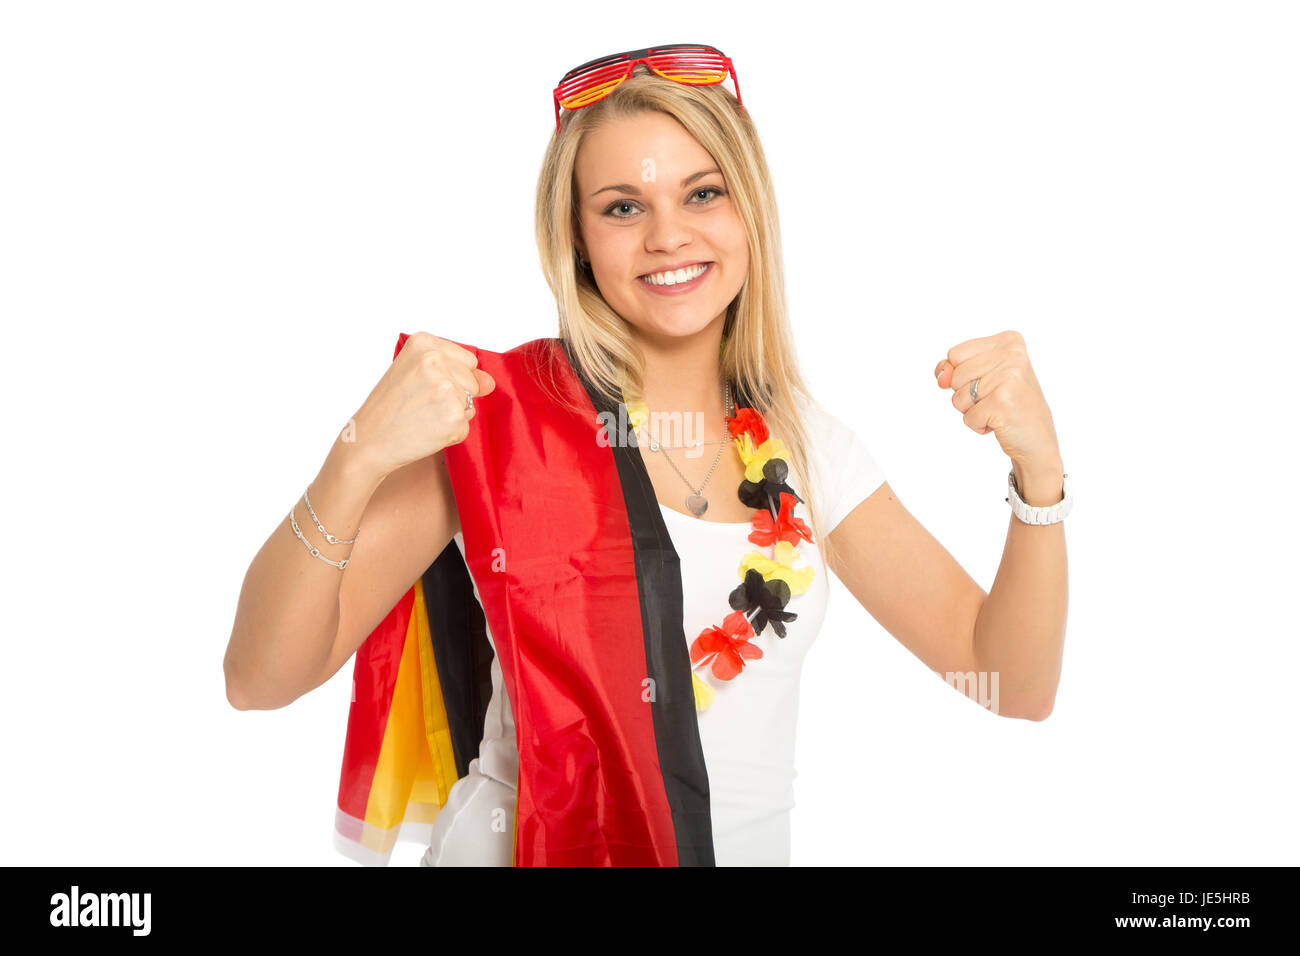 blonde woman cheering in germany game - Stock Image